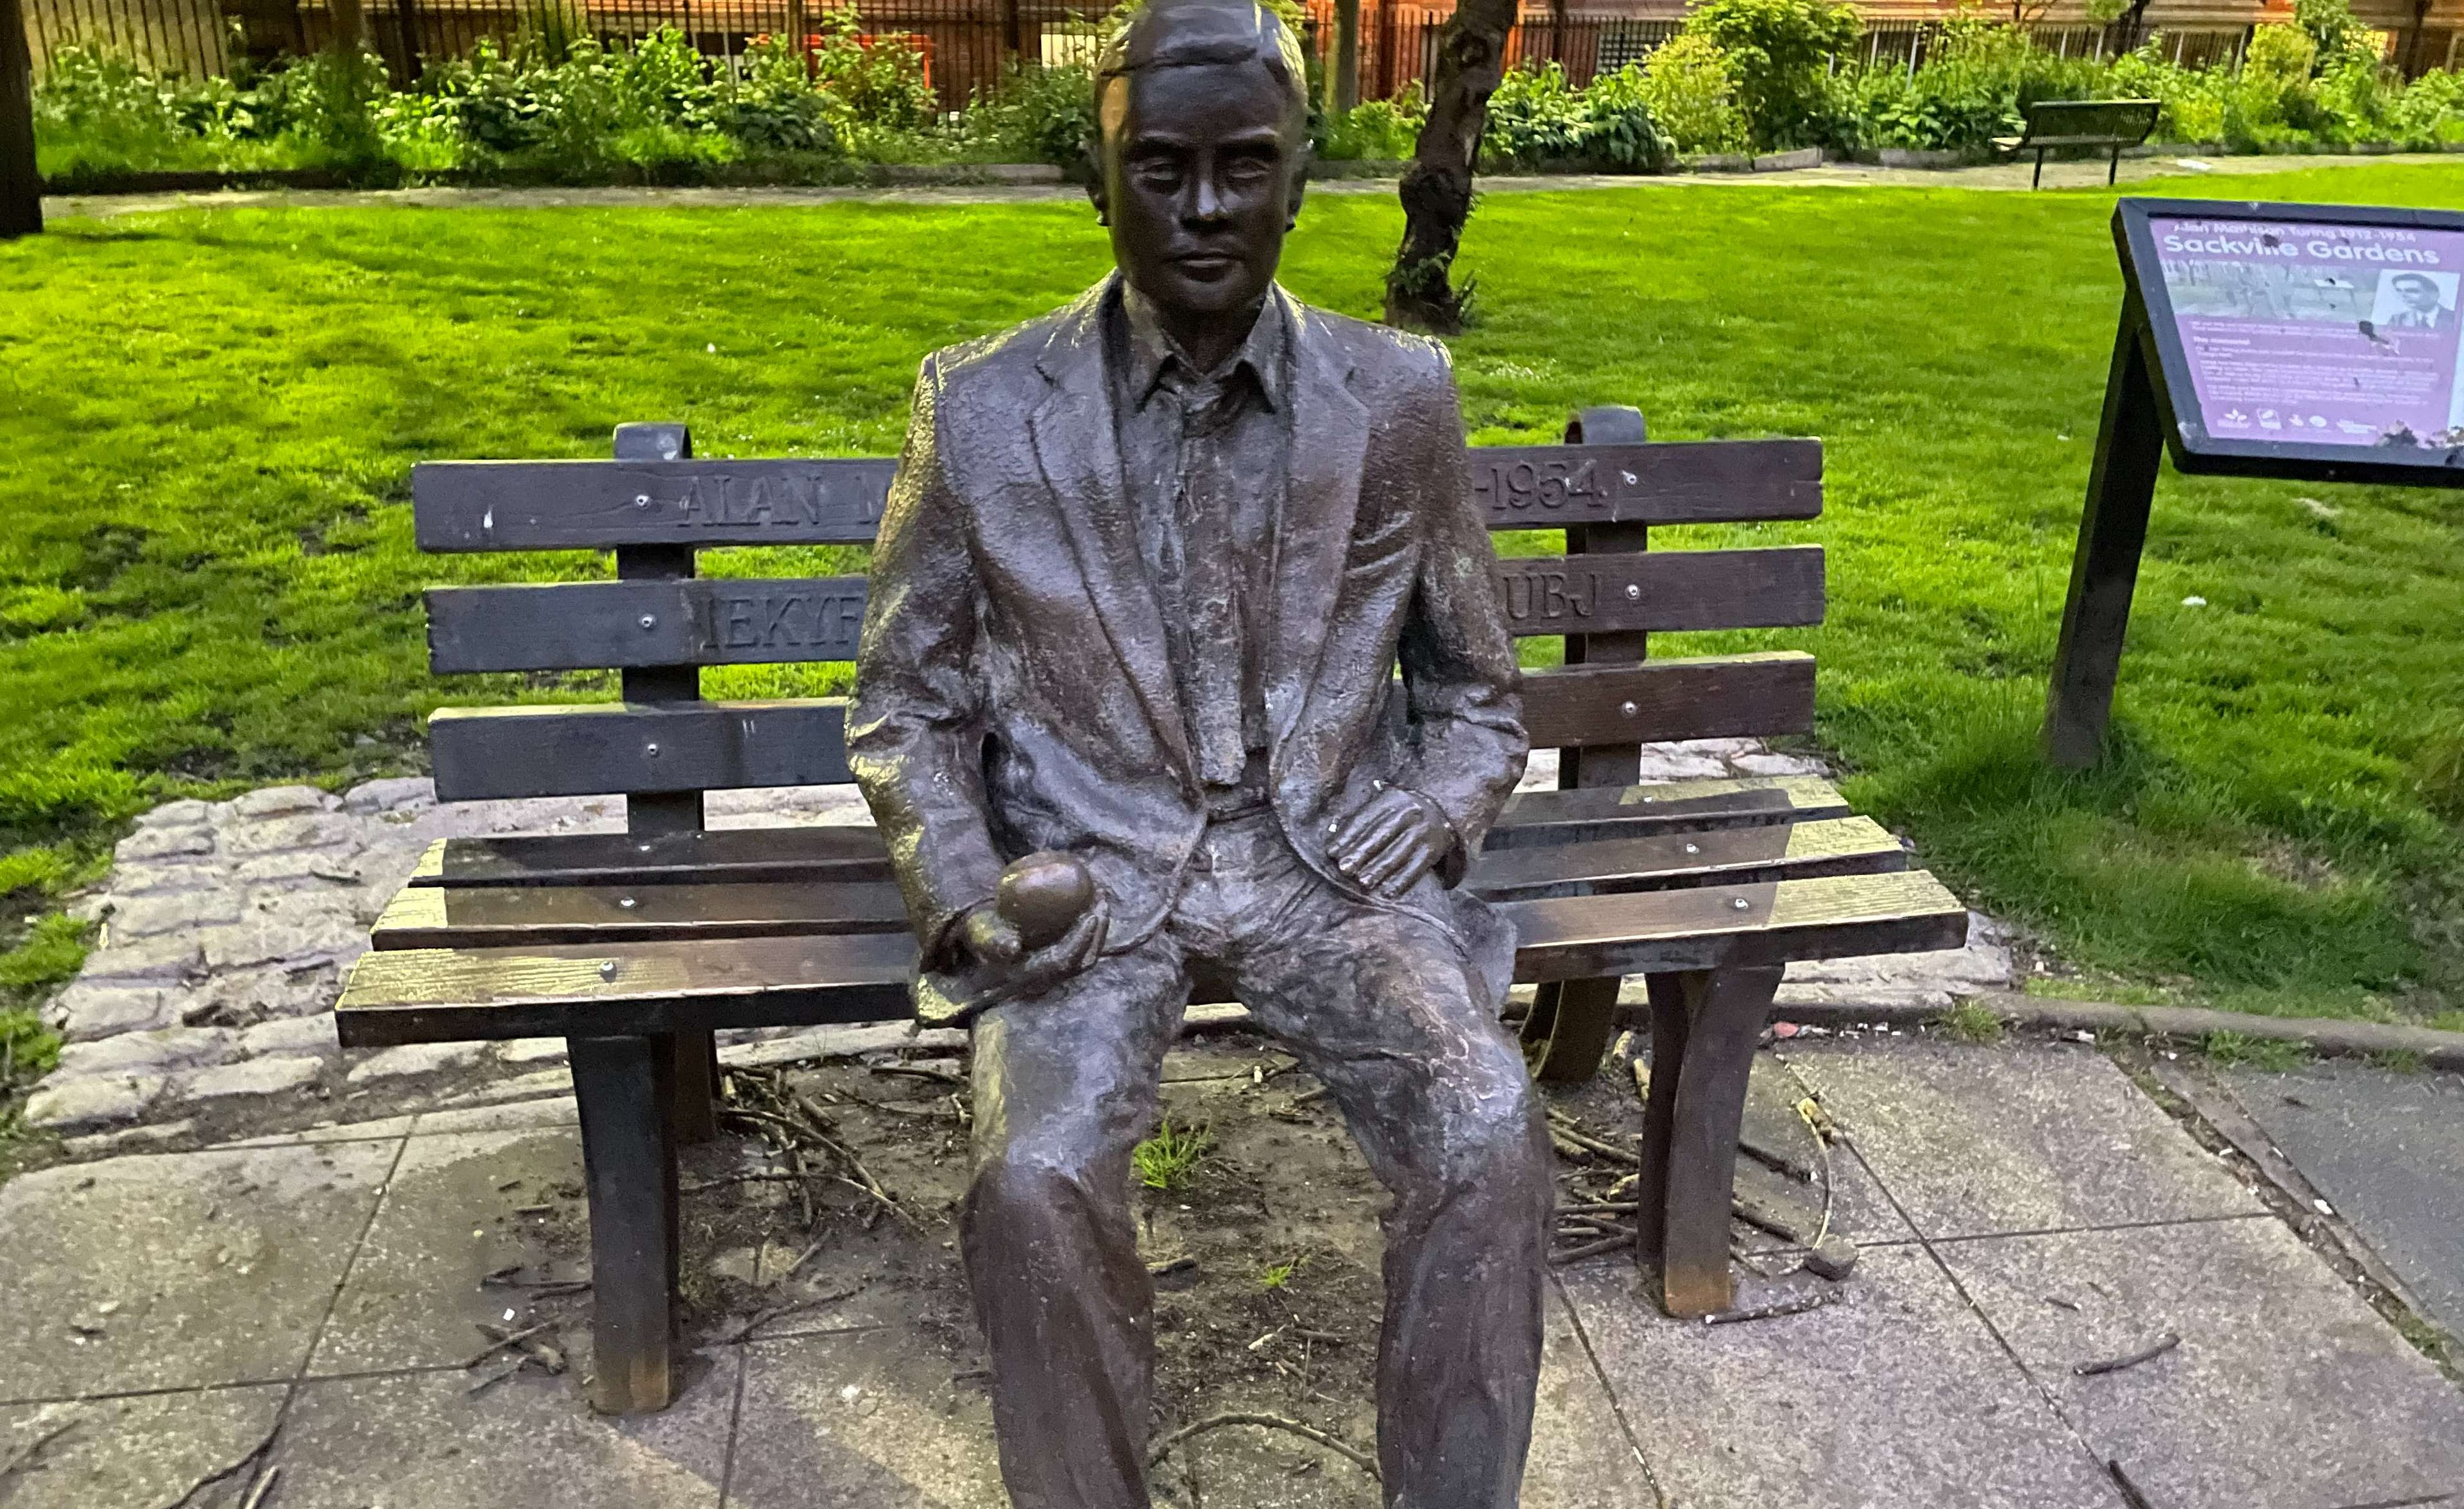 Alan Turing's Manchester: The Hidden Cause (QUEST IN TEST MODE) image